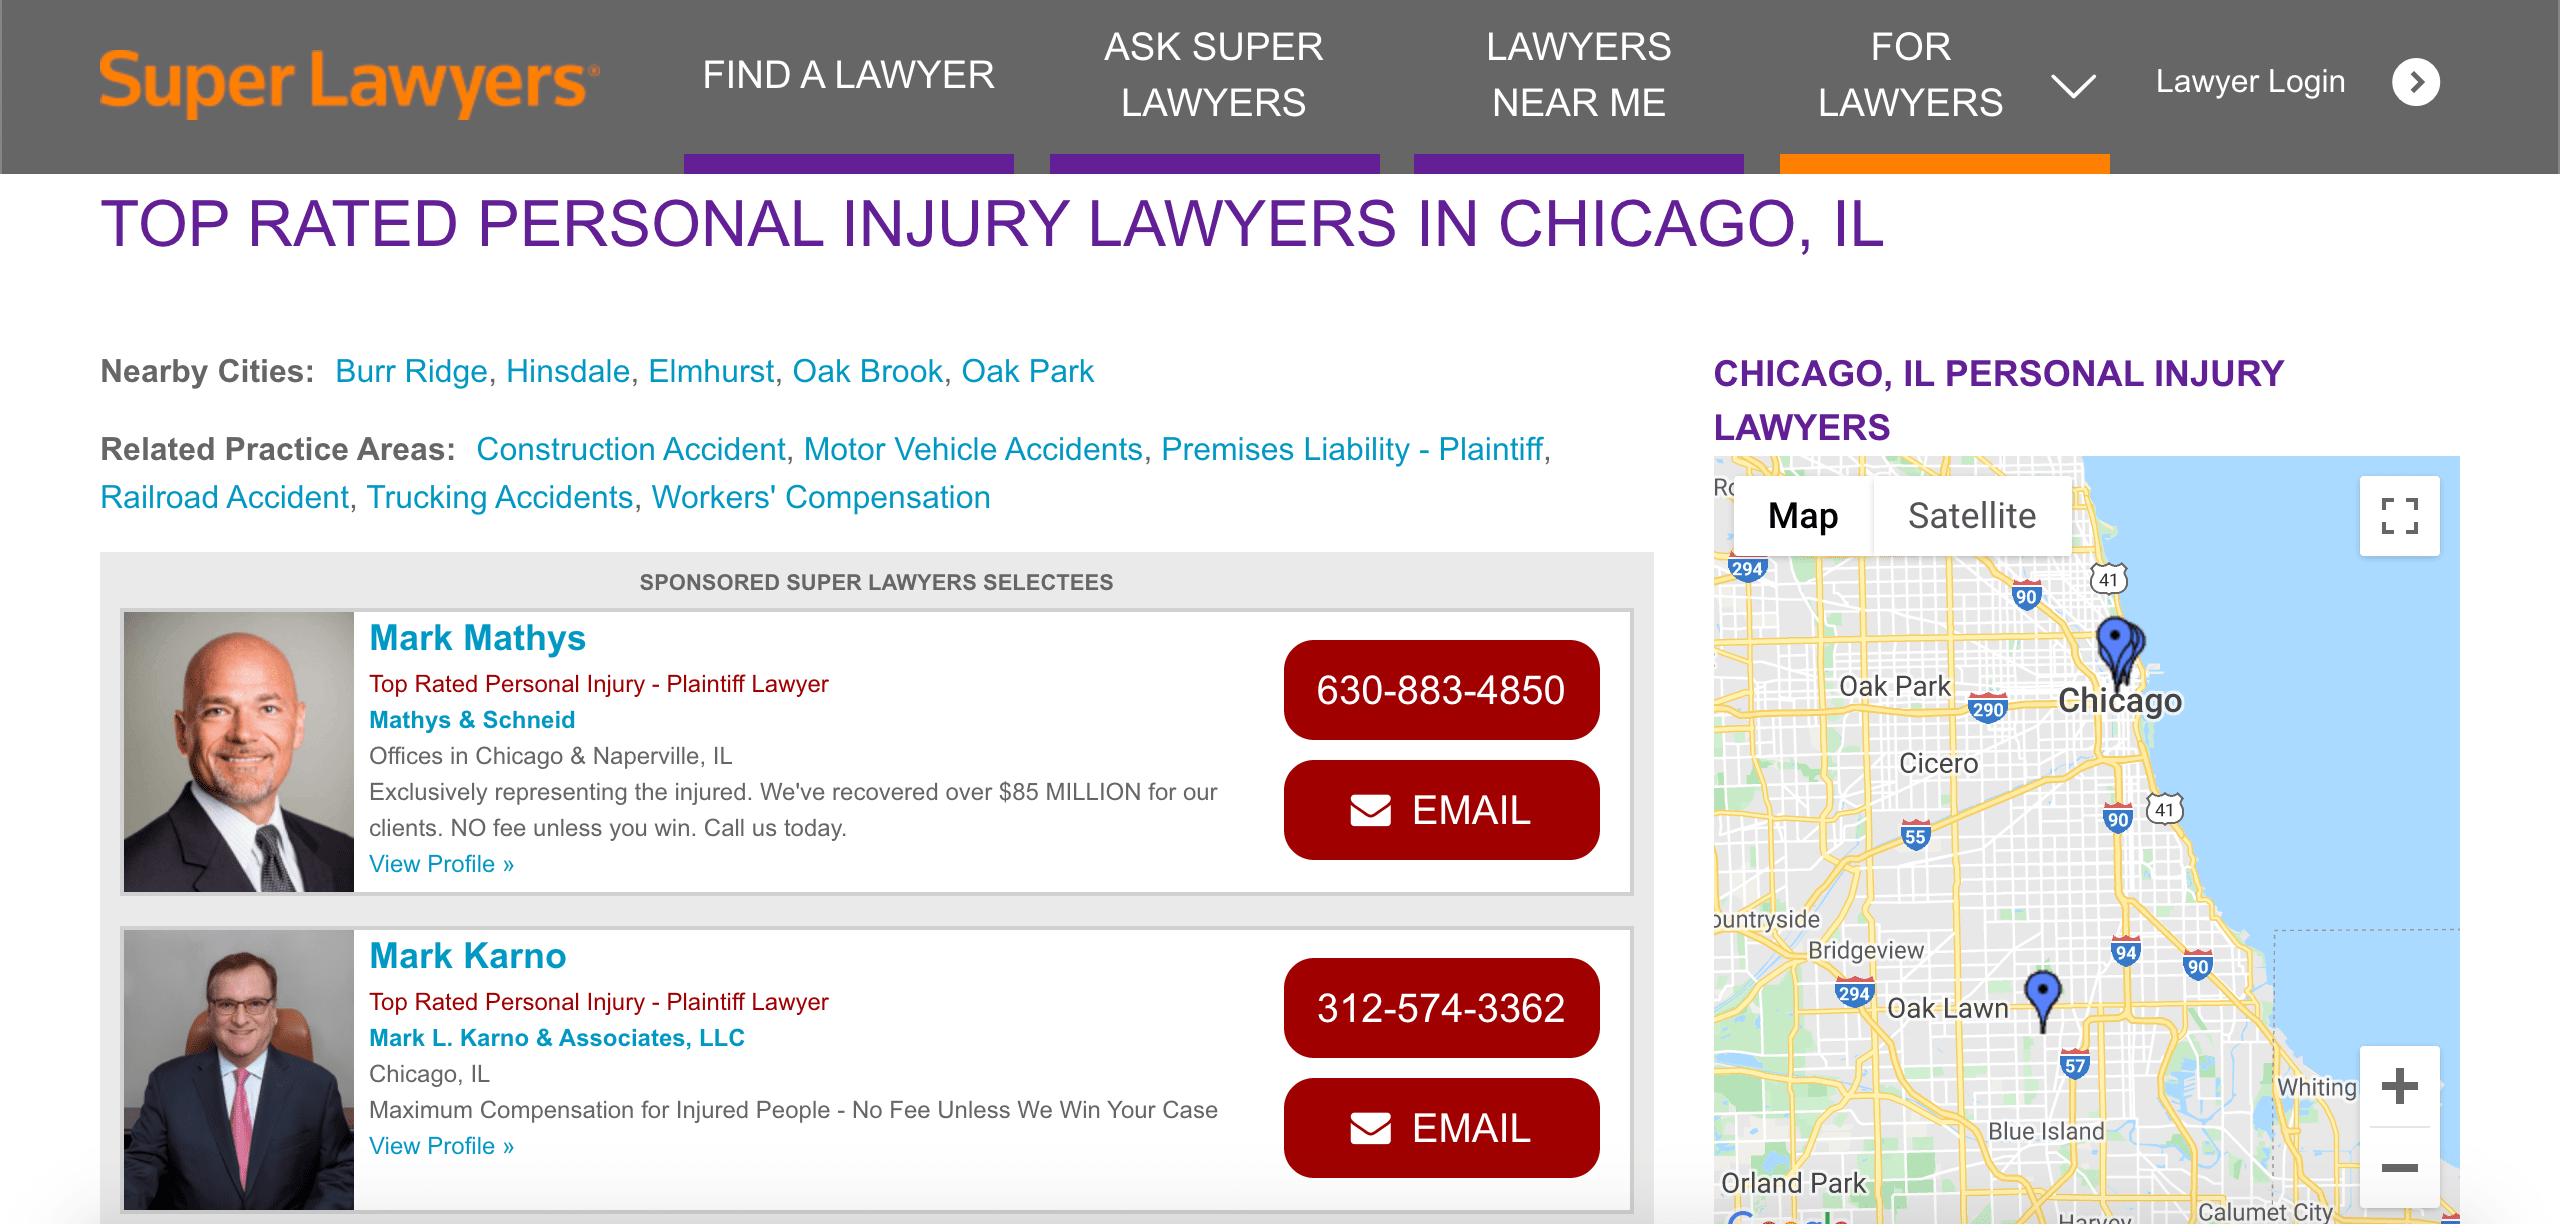 An example of a niche listing, Superlawyers.com